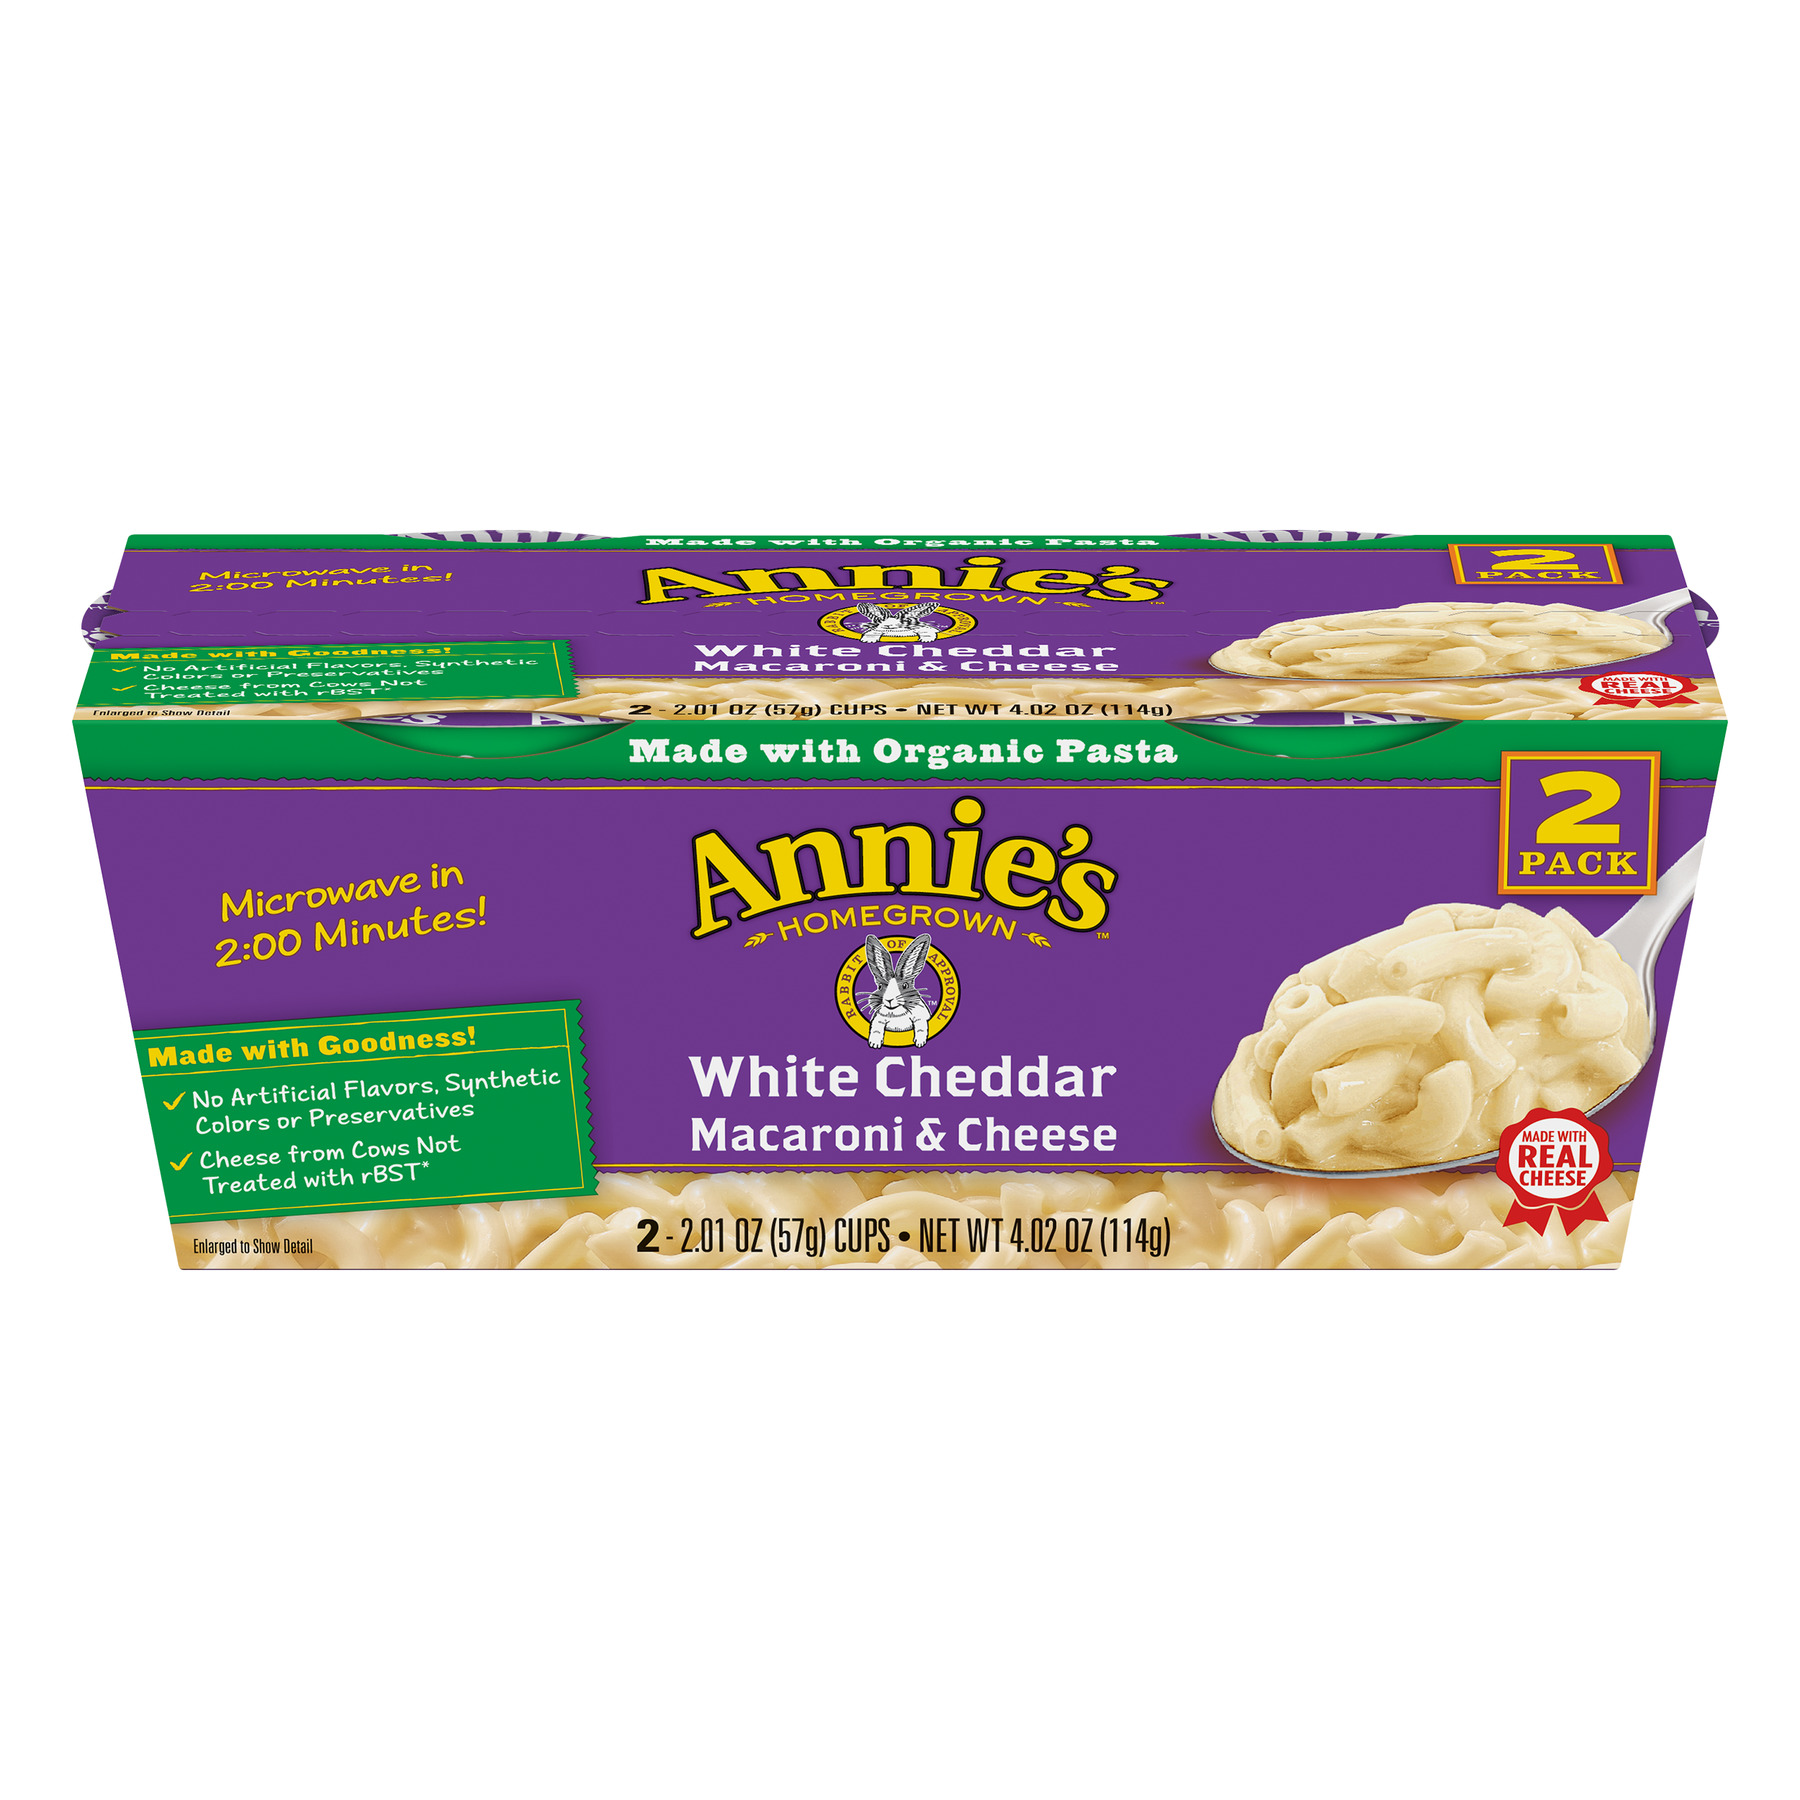 Annie's White Cheddar Macaroni and Cheese Micro Cup 2 Ct, 4.02 oz